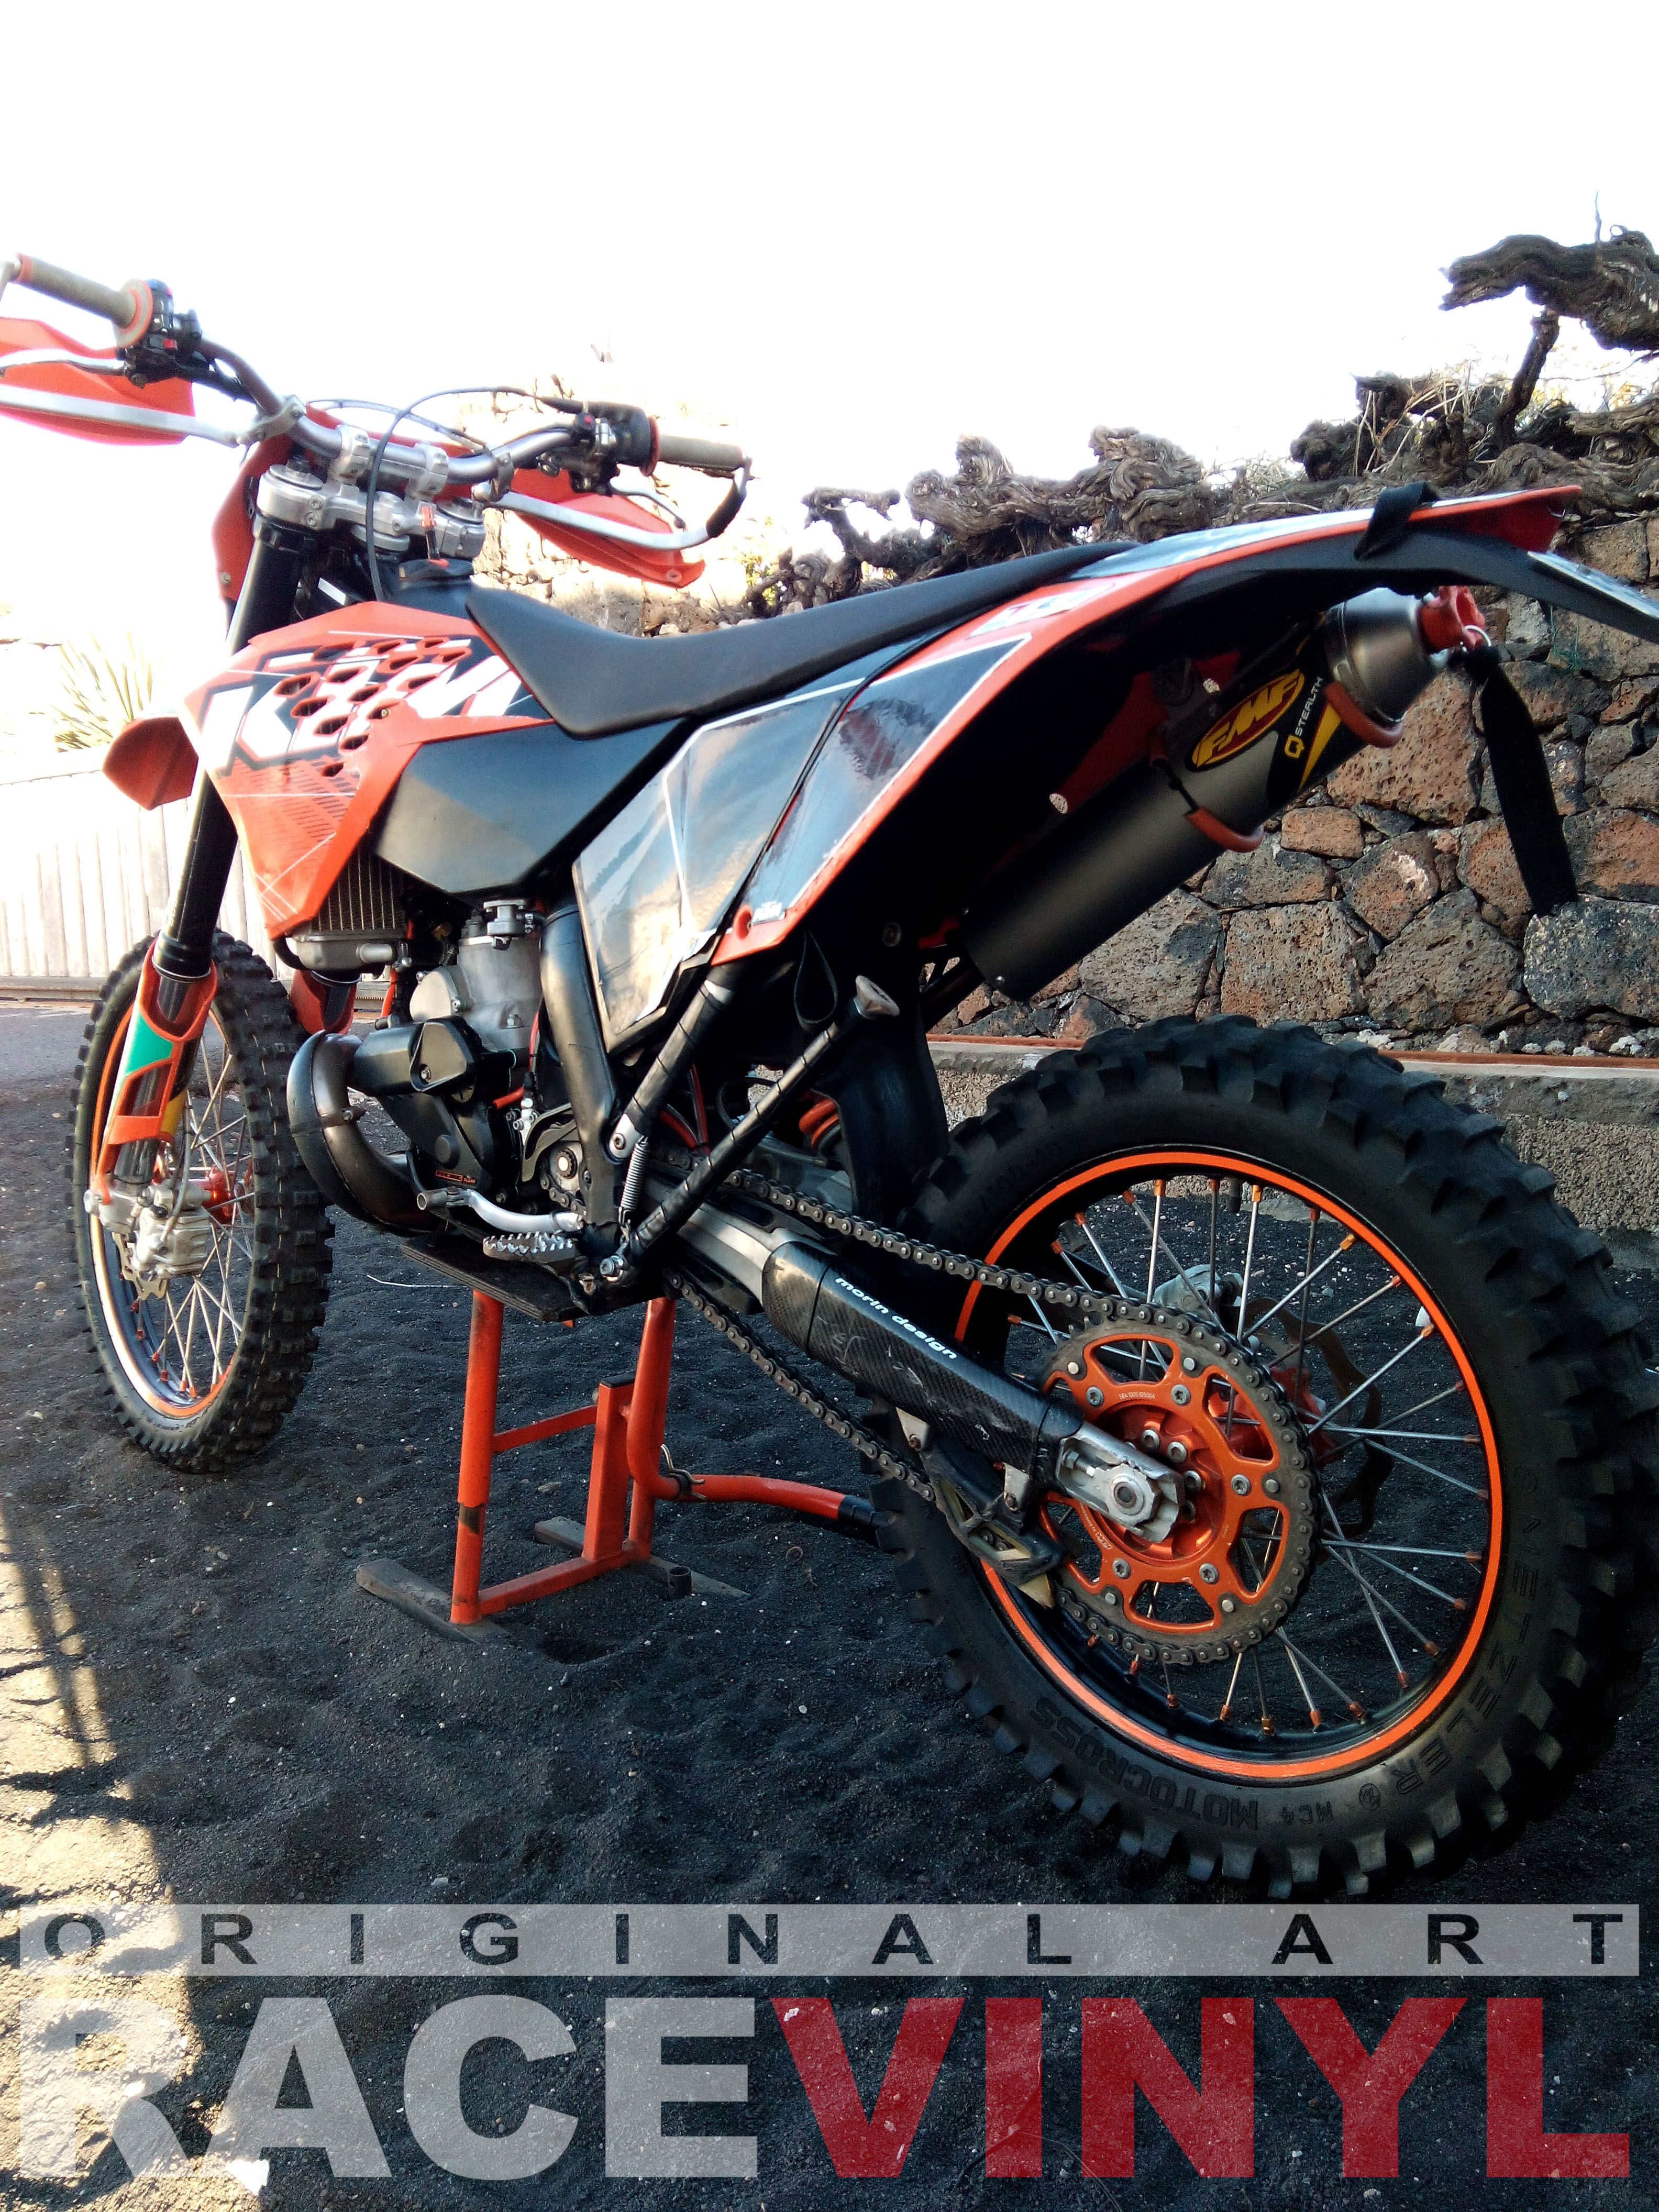 KTM 300 MXC 2002 images #85474